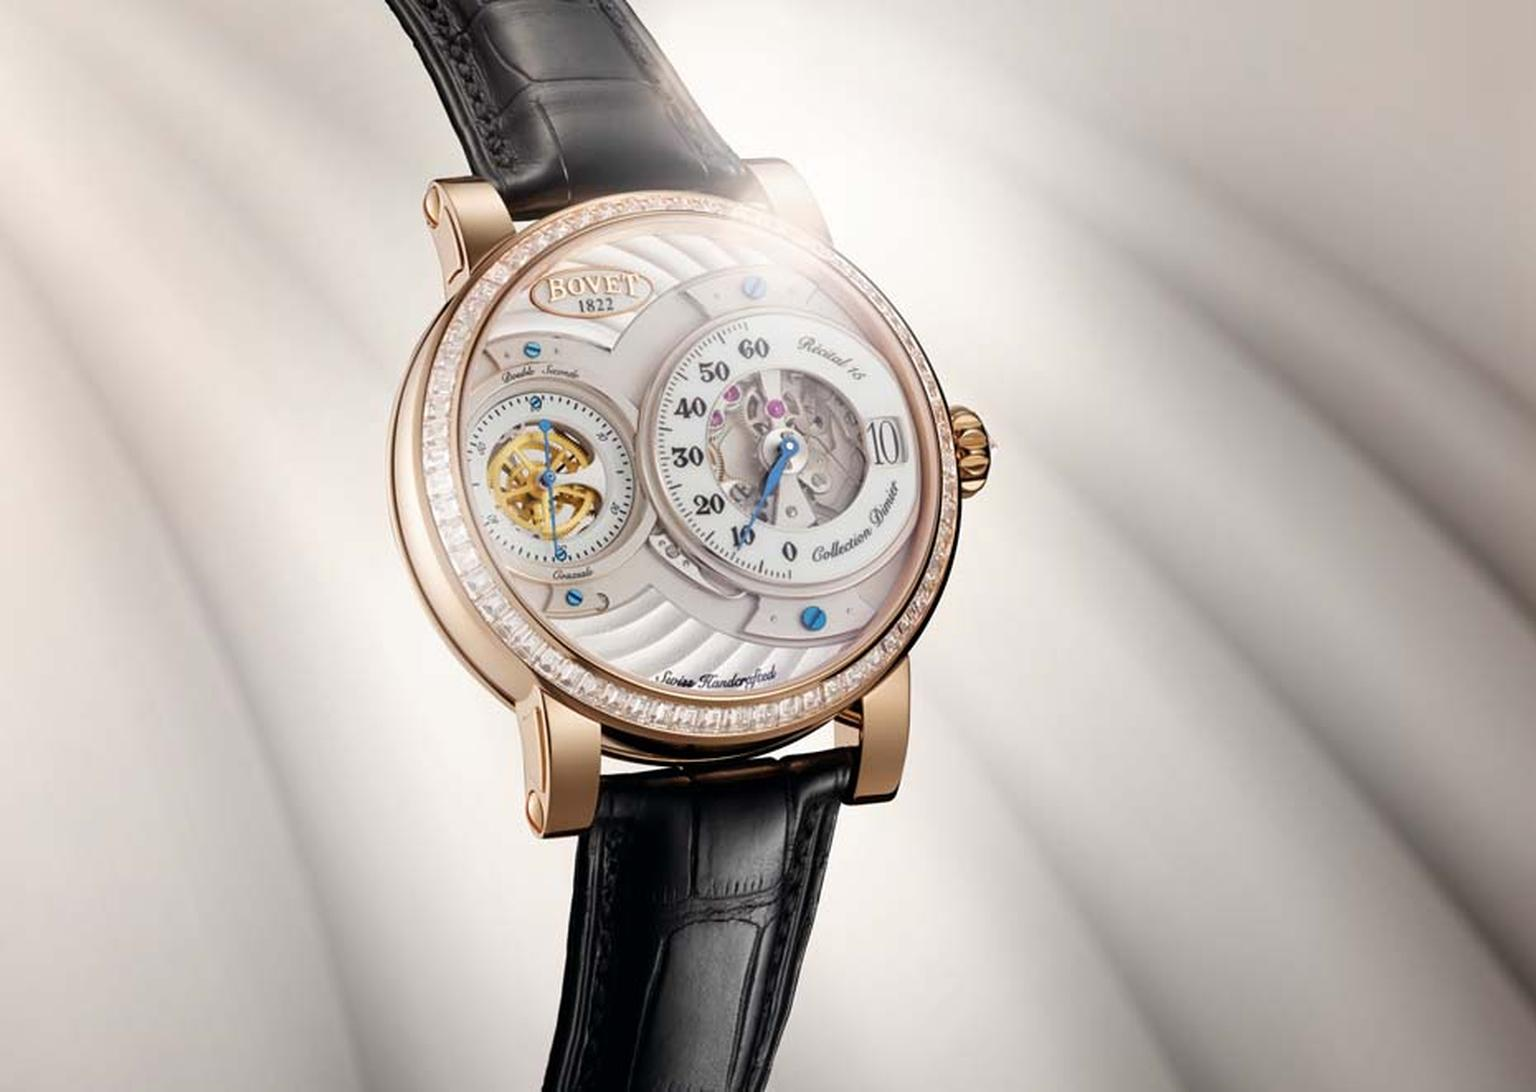 Bovet Recital 15 currently houses the Virtuoso 2, Bovet's in-house crafted calibre with a five-day power reserve.